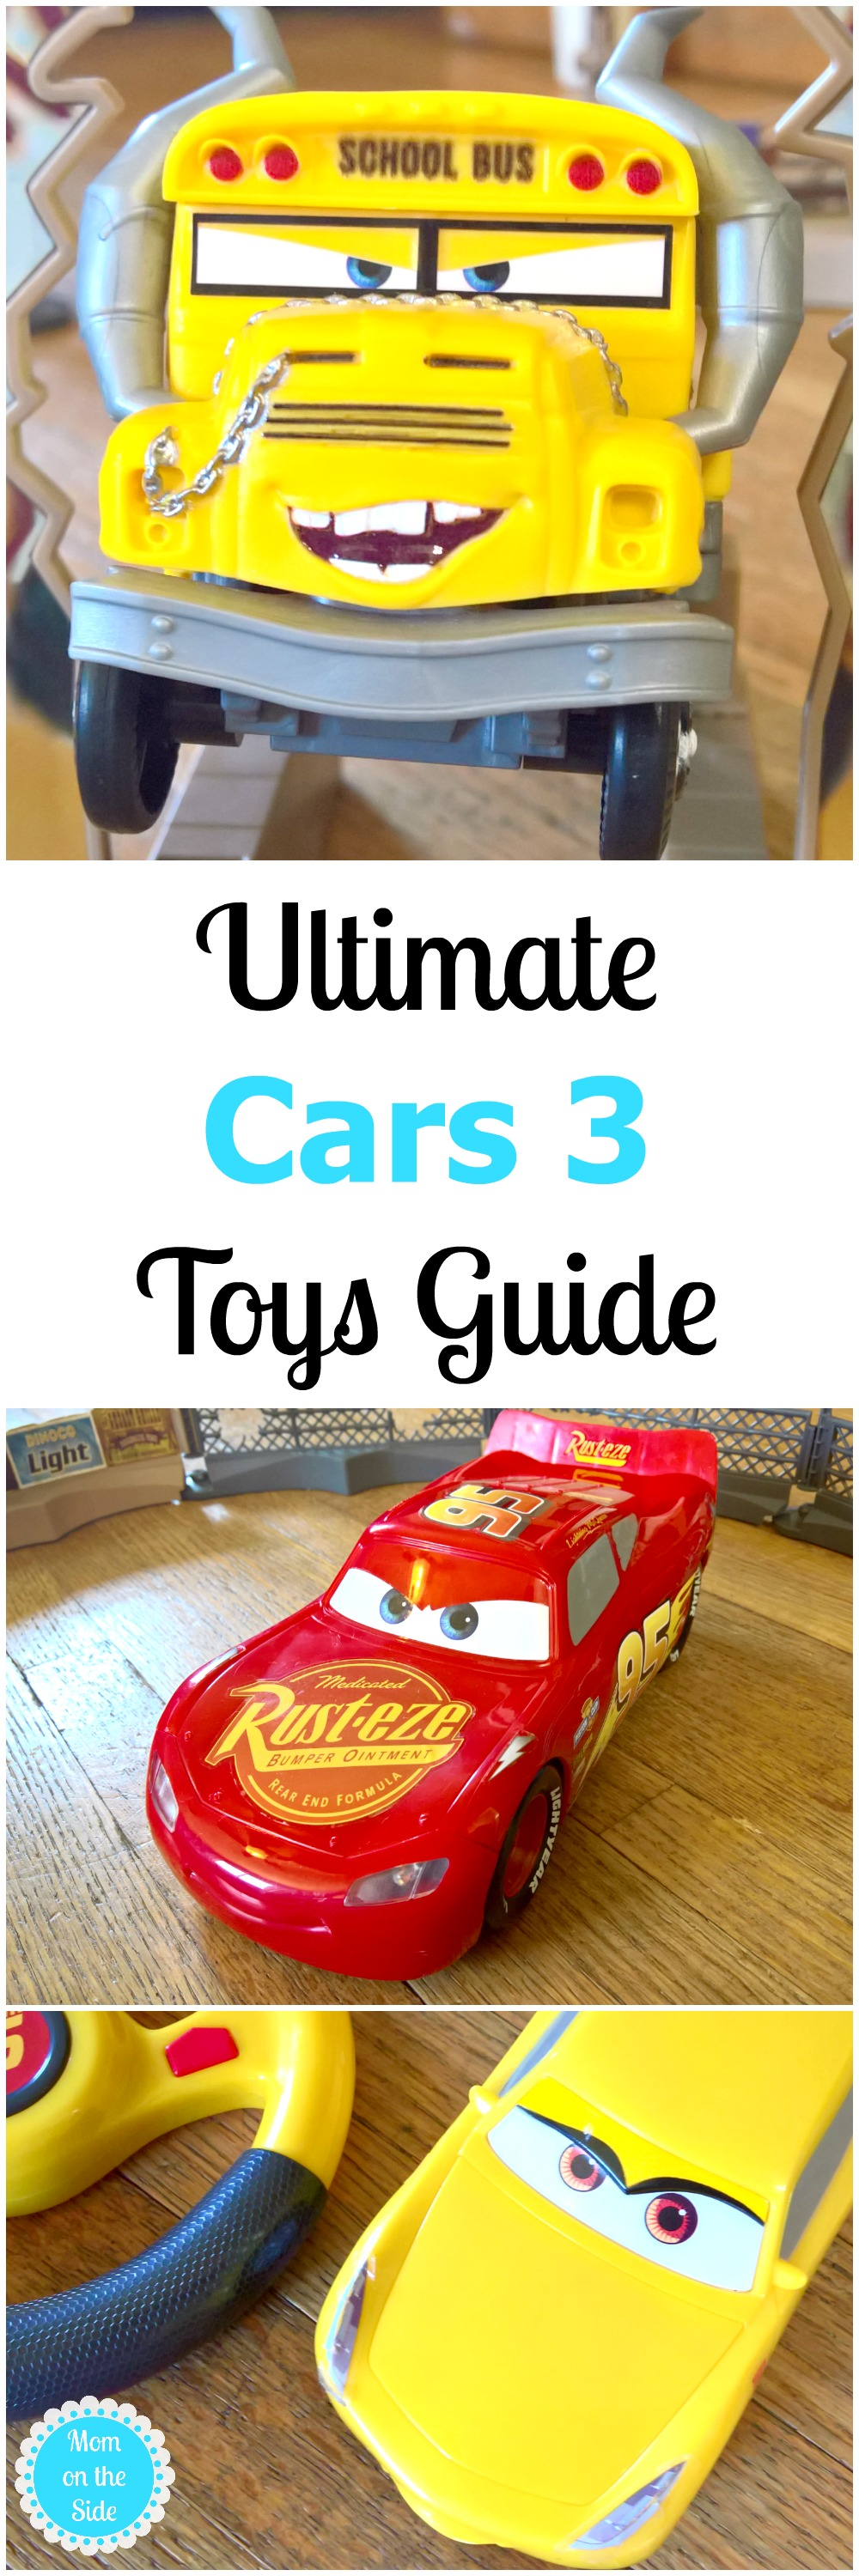 New Cars 3 Toys and Products for Sale